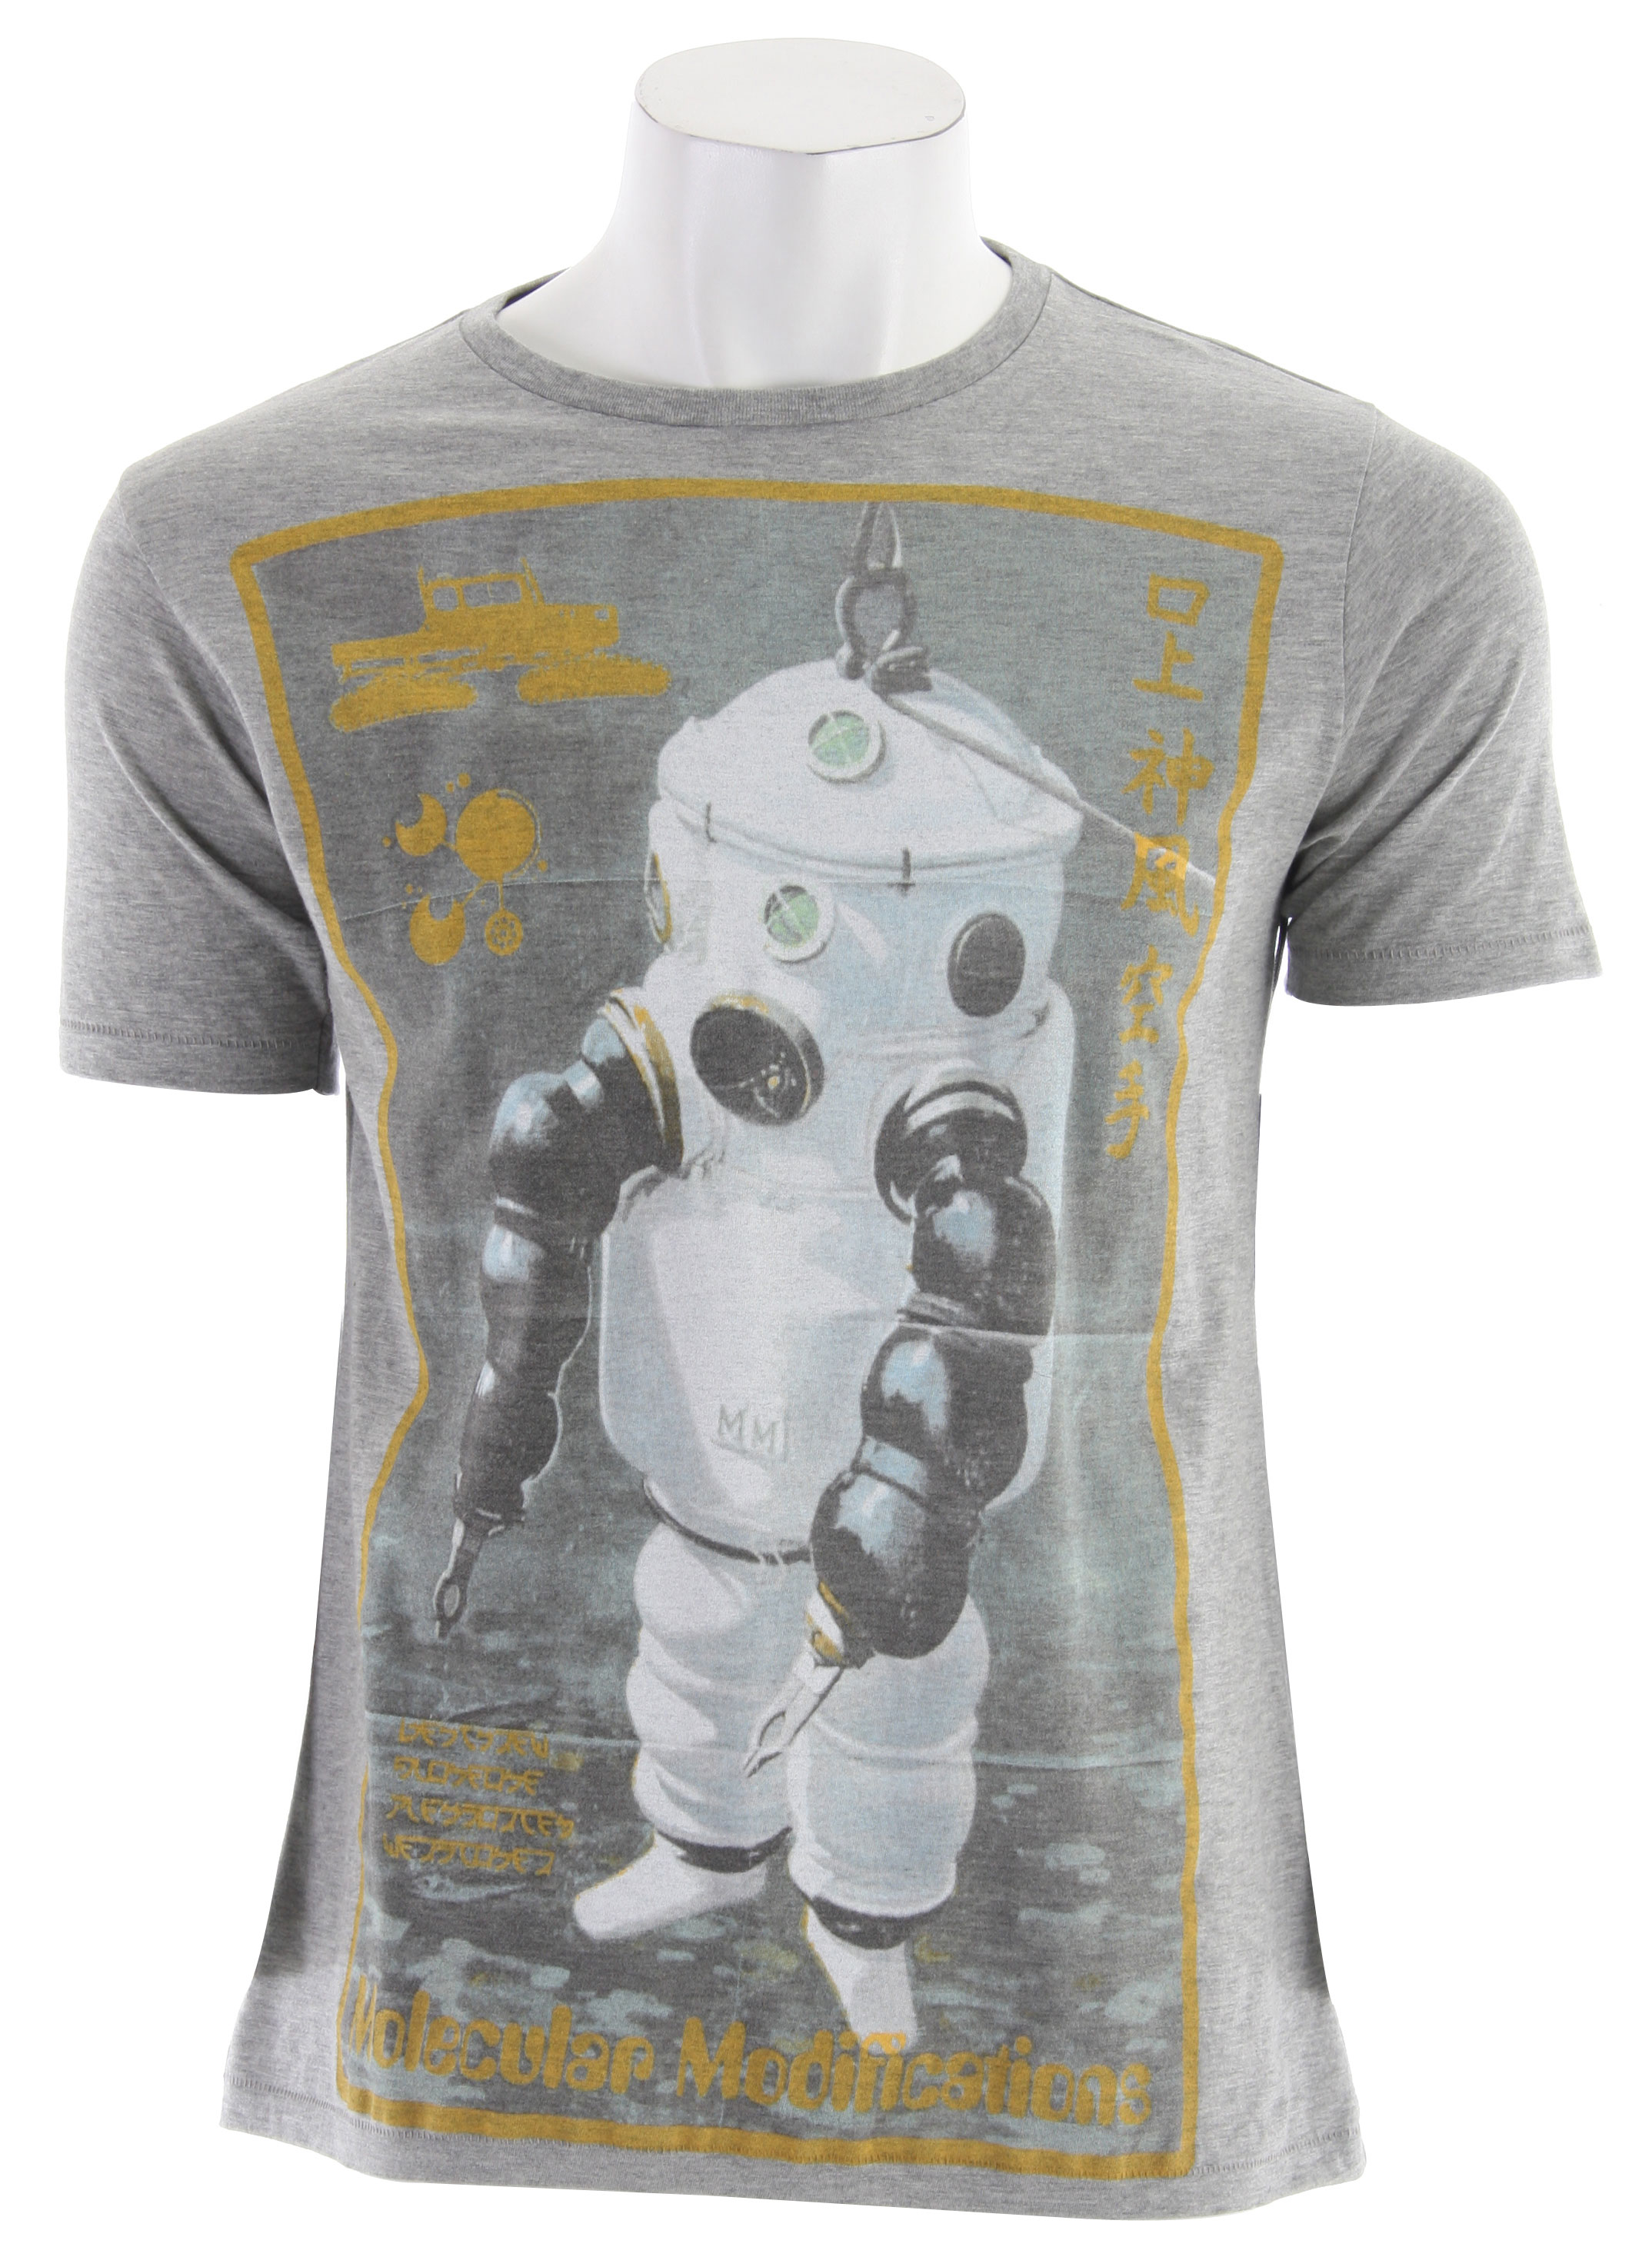 The Spacecraft Diver T-Shirt is a cotton jersey with print from artist collective series. - $24.95